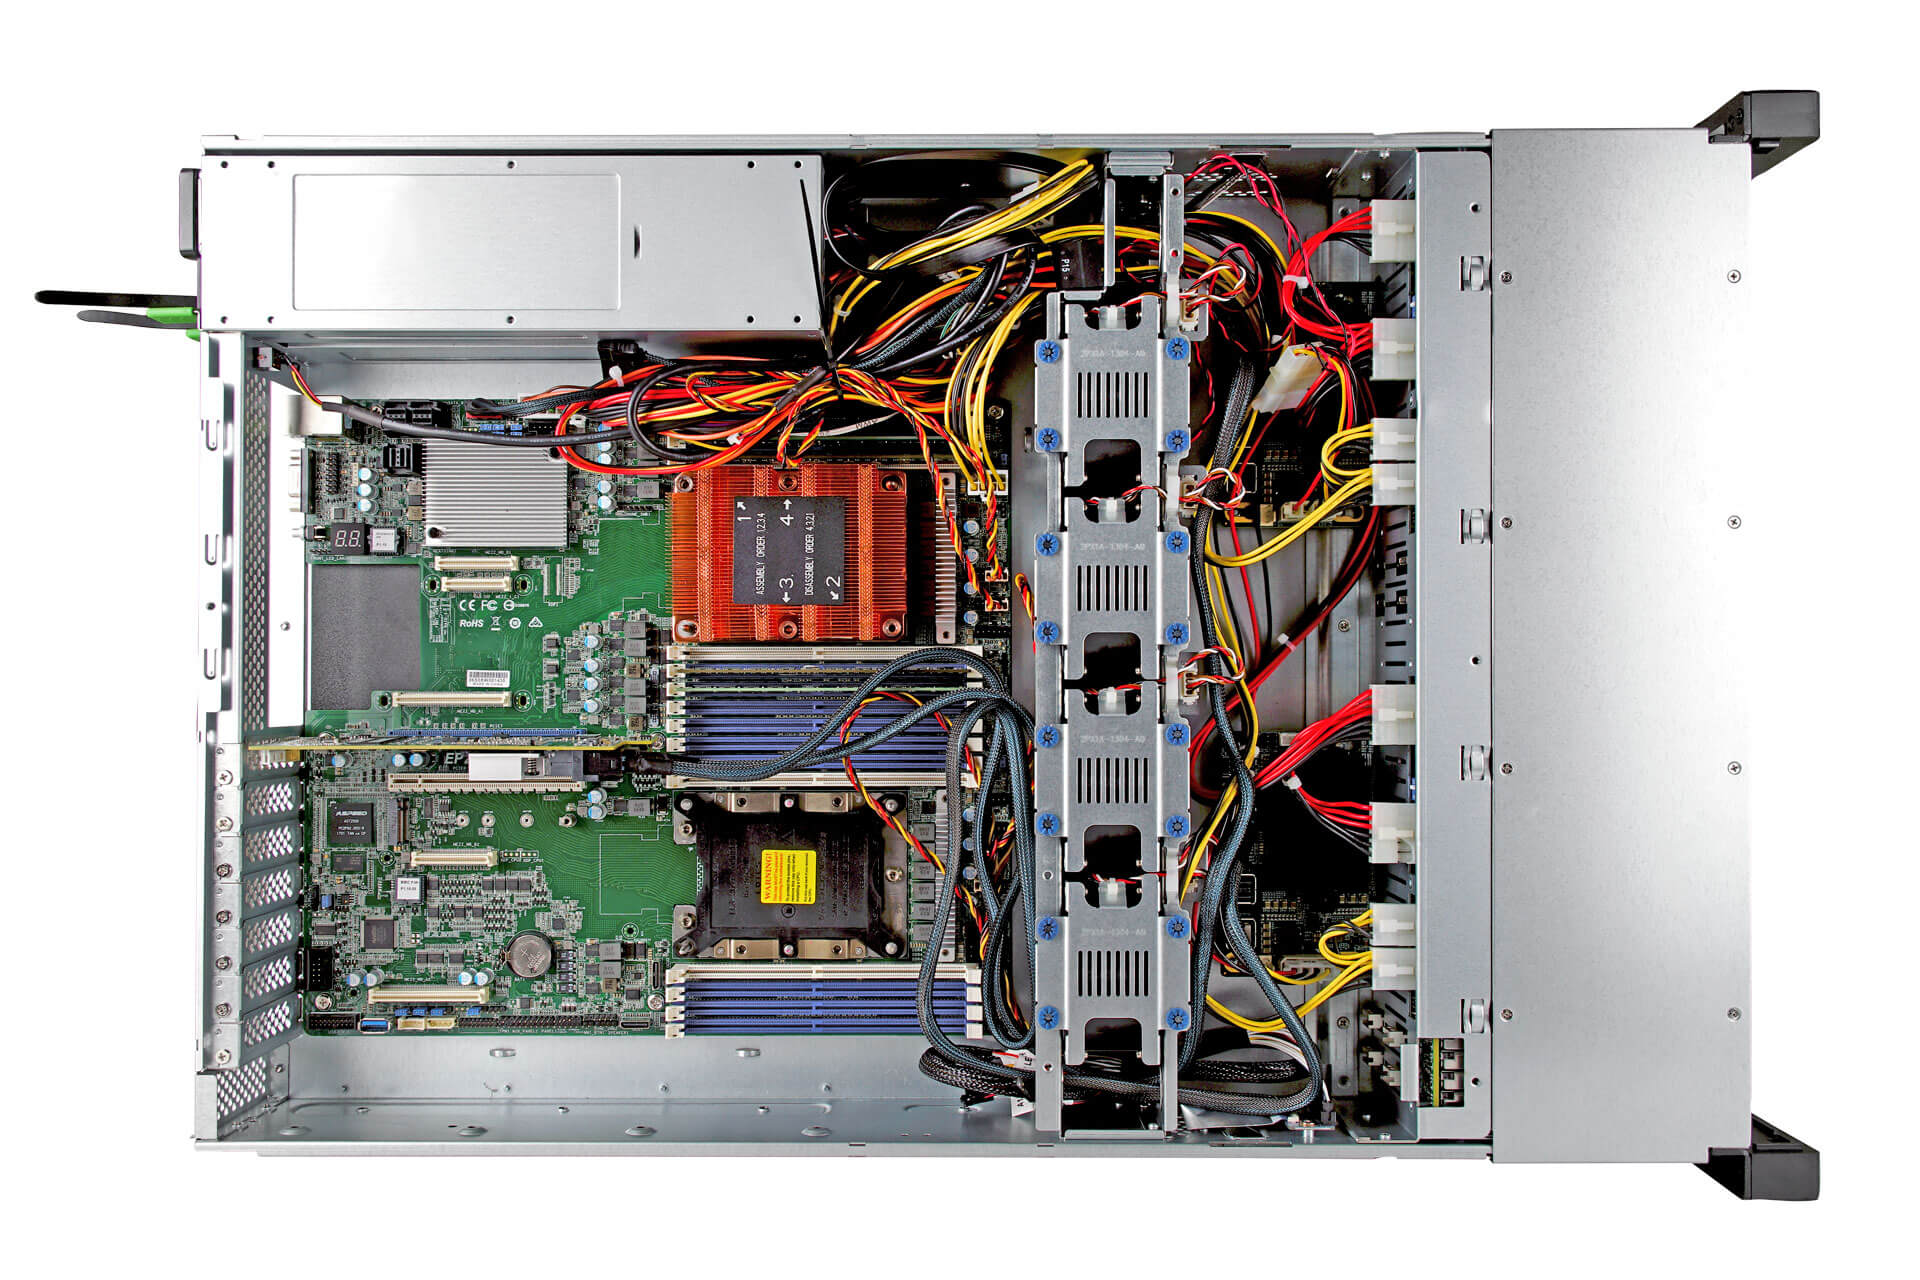 IW-RS248-03 - server system assembly